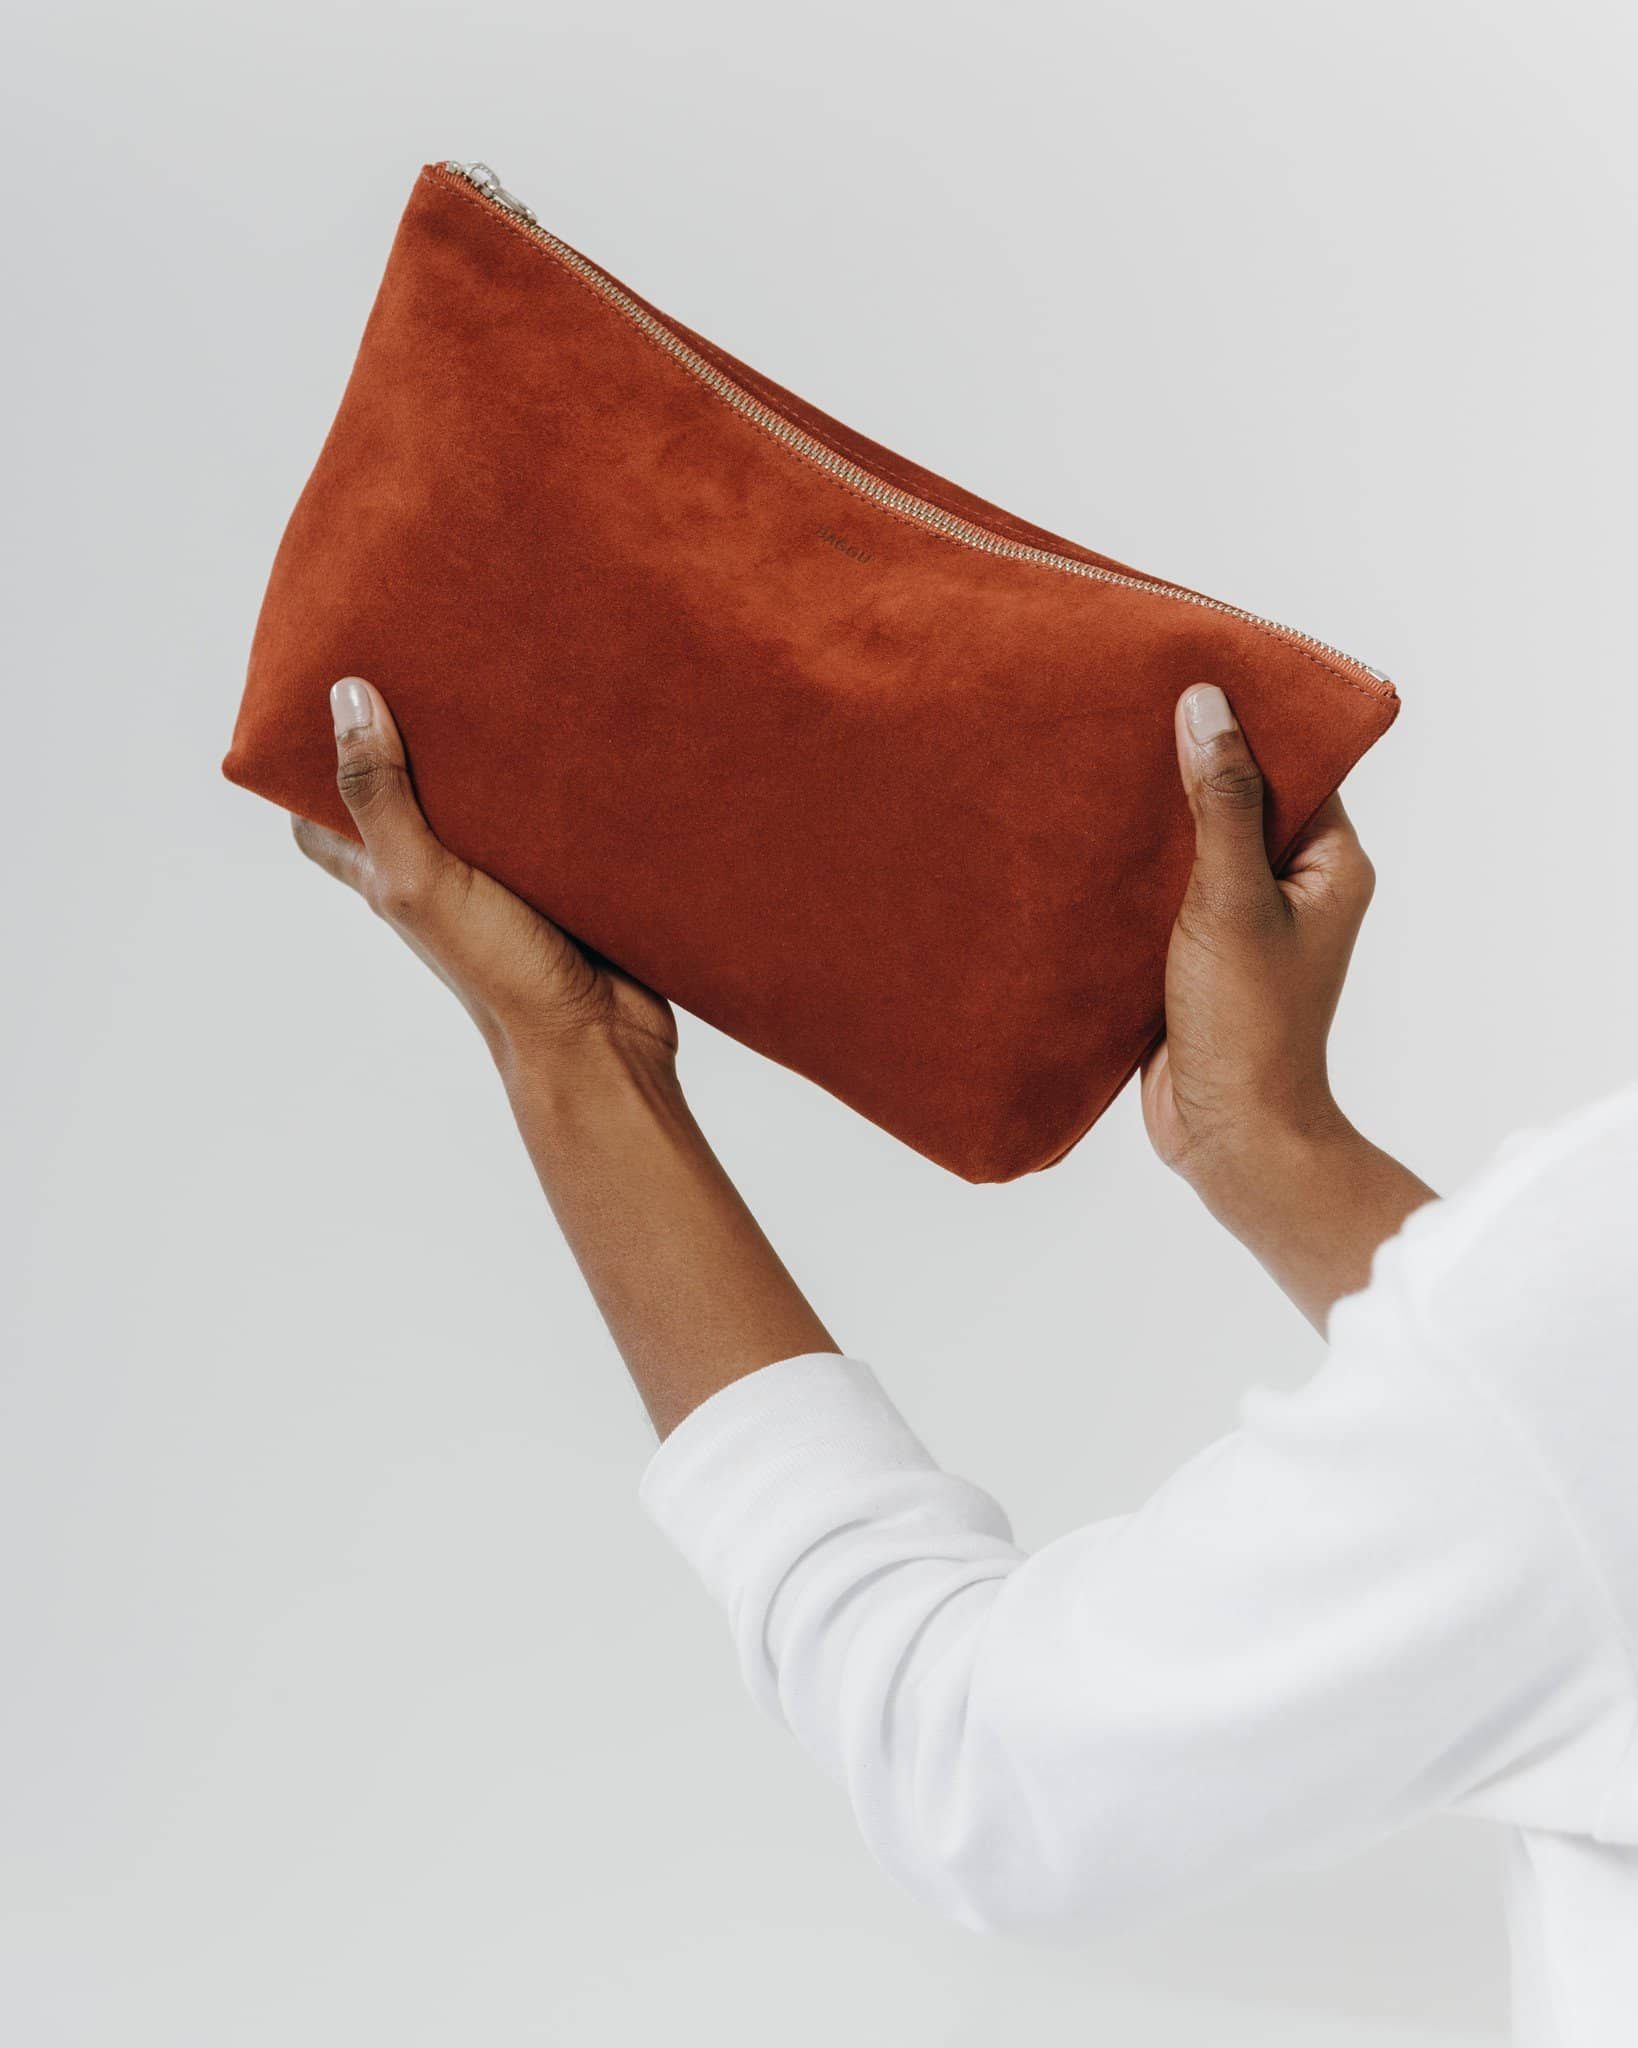 Baggu Leather Pouch - Rust Suede - Large